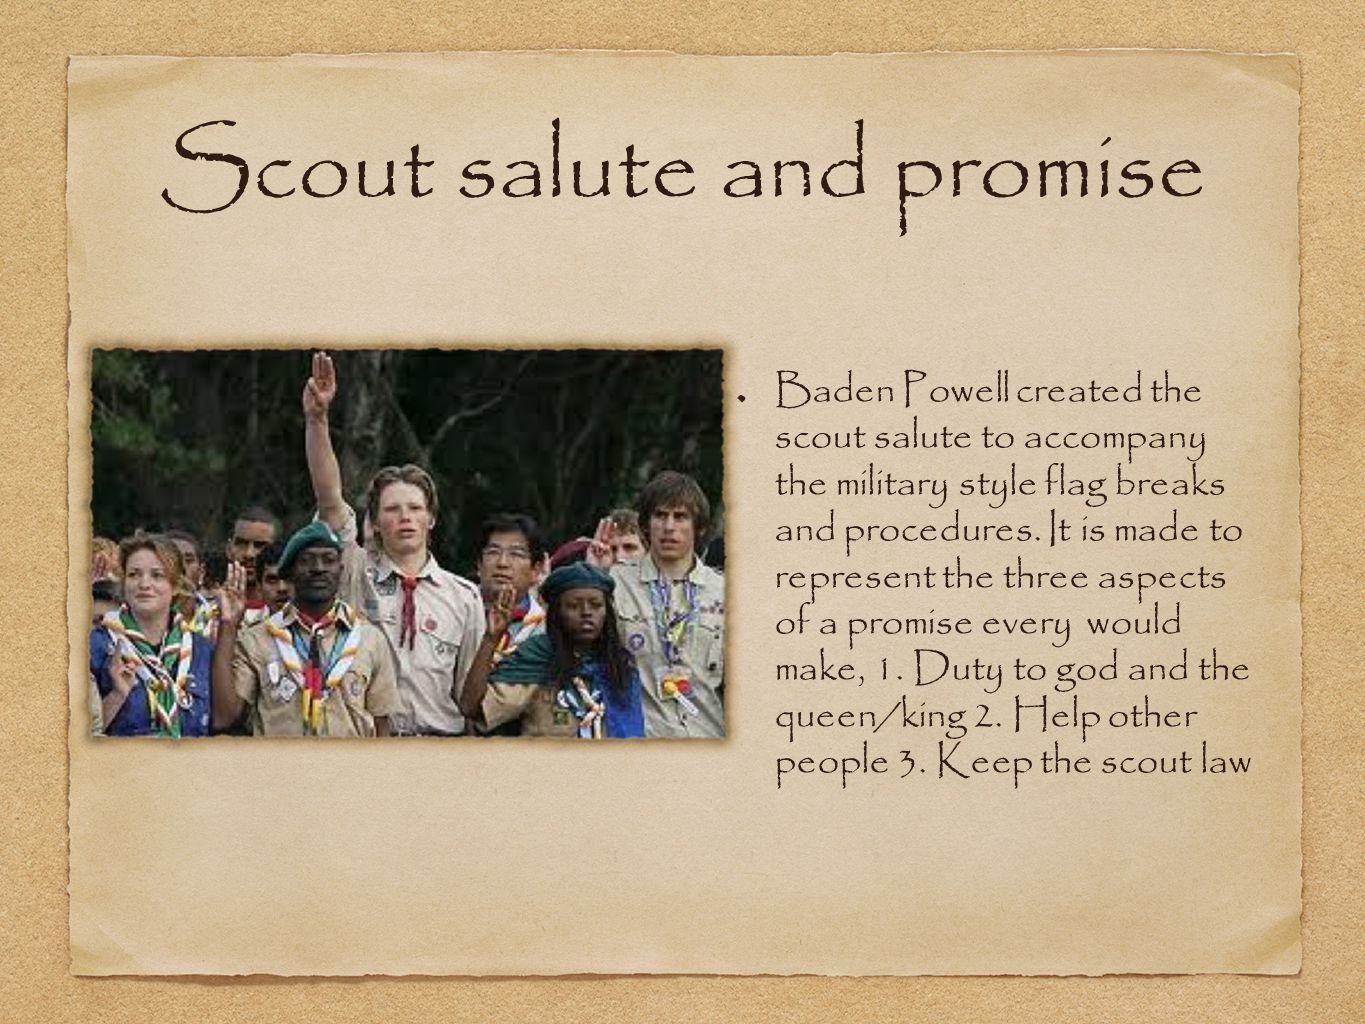 Scout salute and promise Baden Powell created the scout salute to accompany the military style flag breaks and procedures.